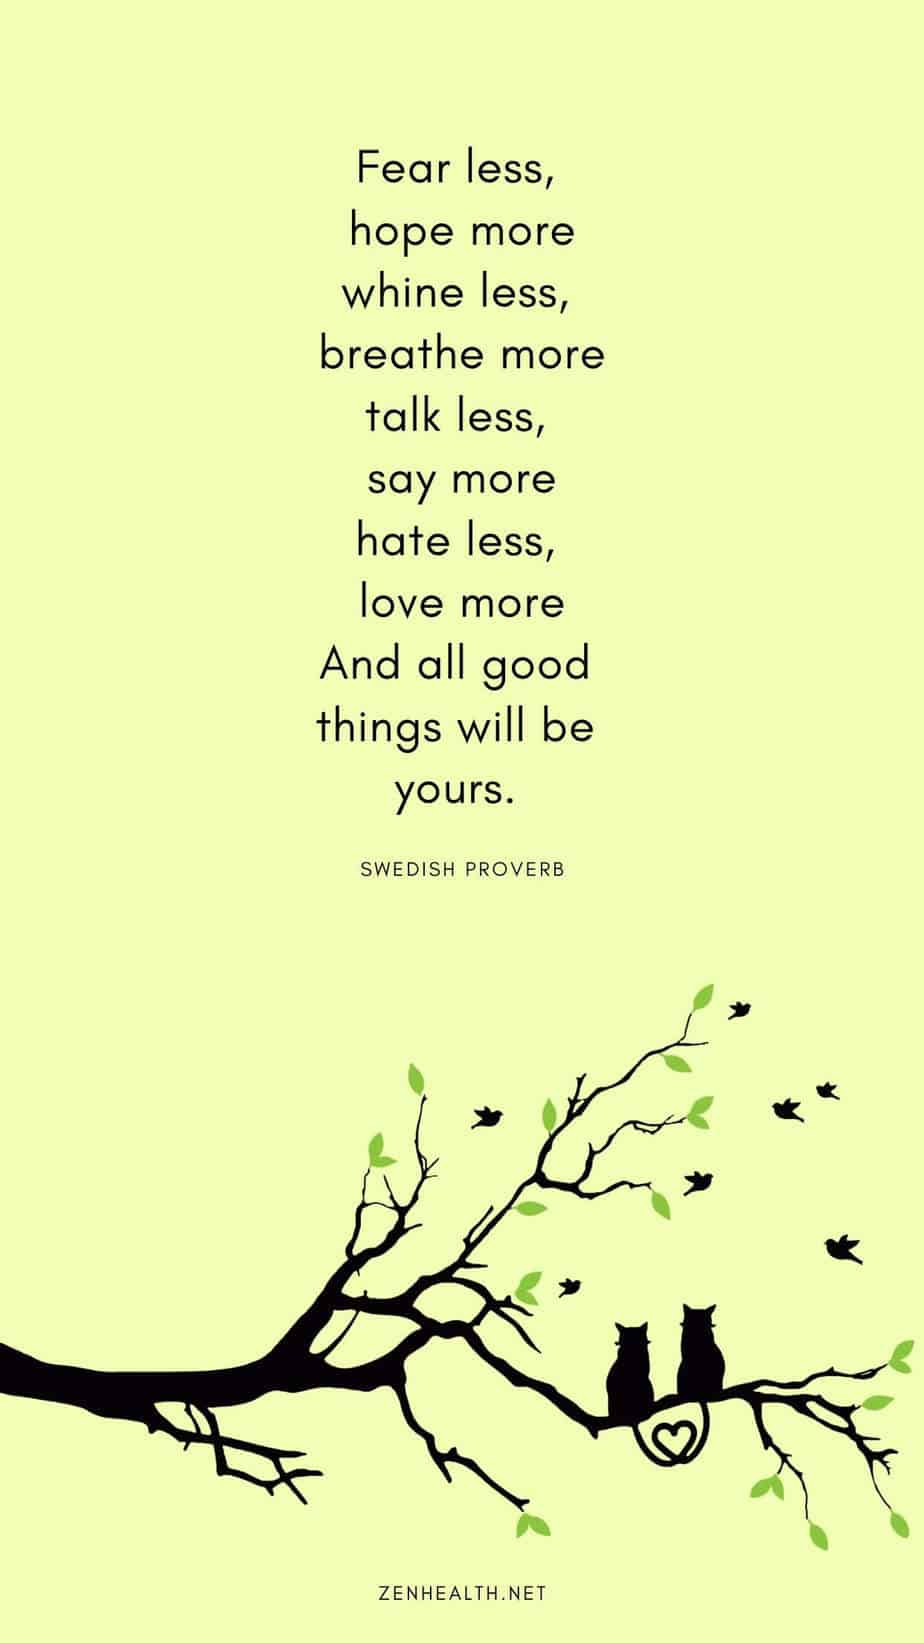 Fear less, hope more, Whine less, breathe more, Talk less, say more, Hate less, love more, And all good things will be yours. - Swedish proverb